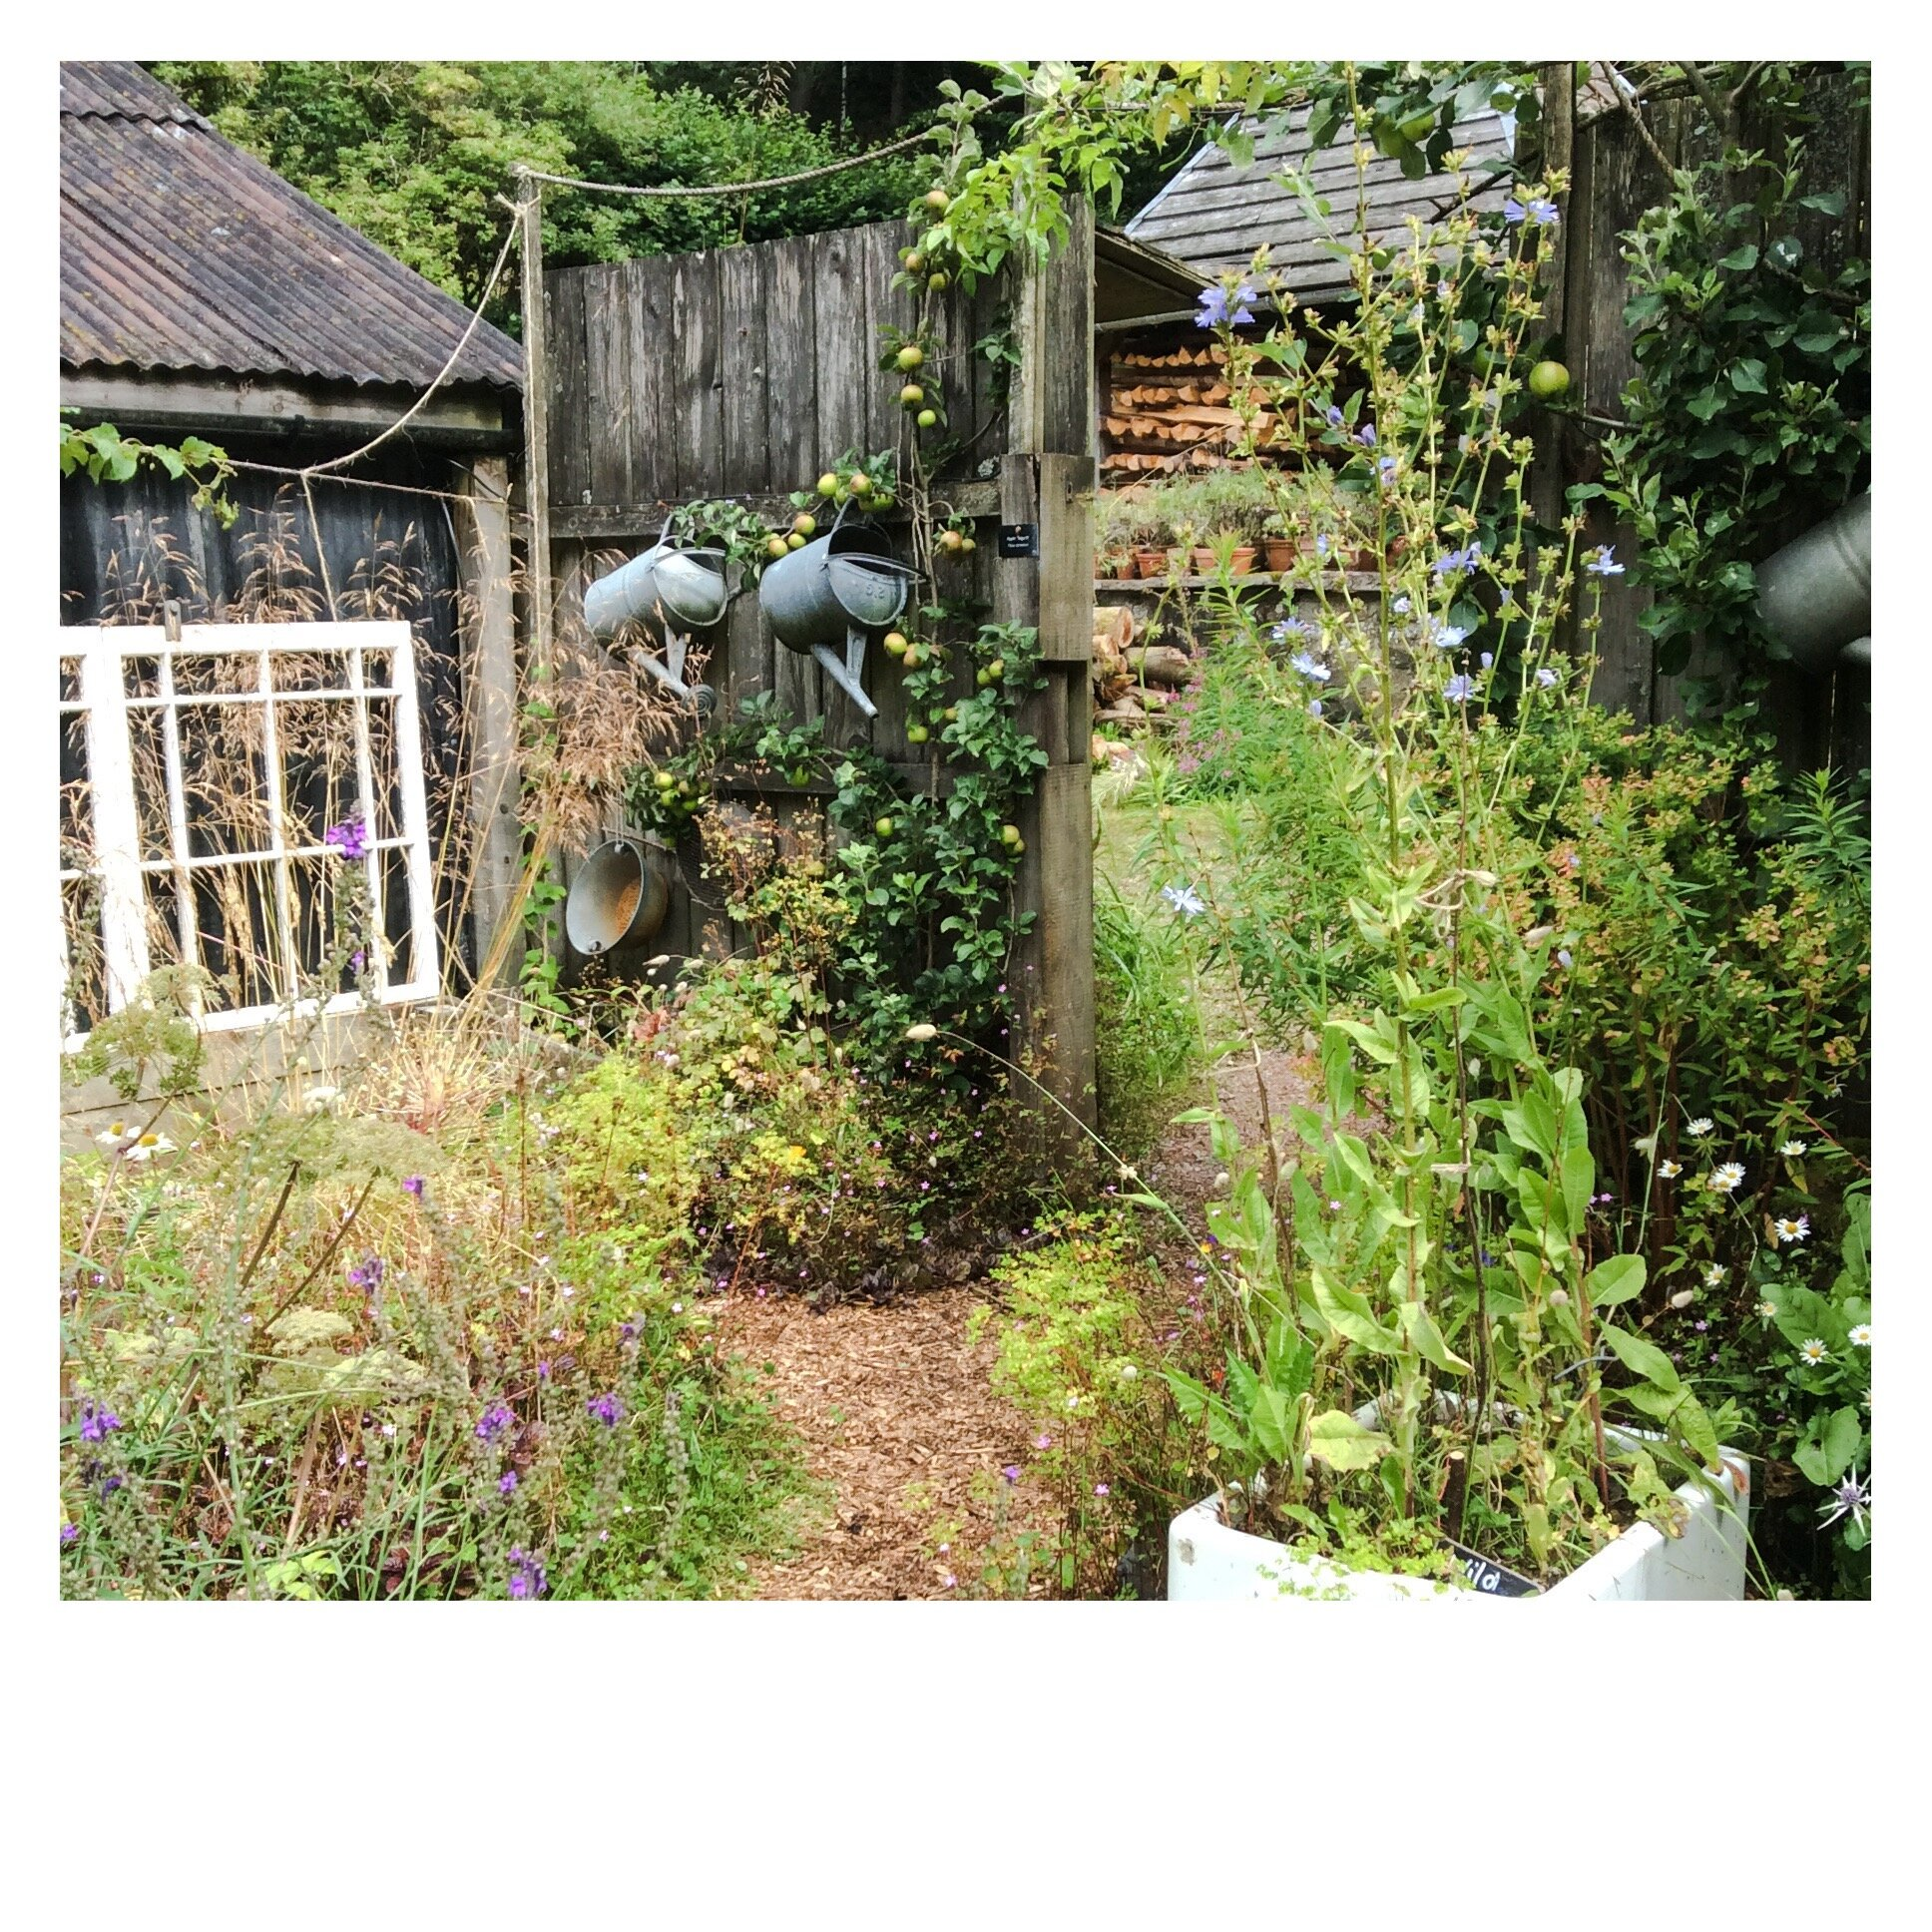 The Potager at Nant y Bedd, August 2019.